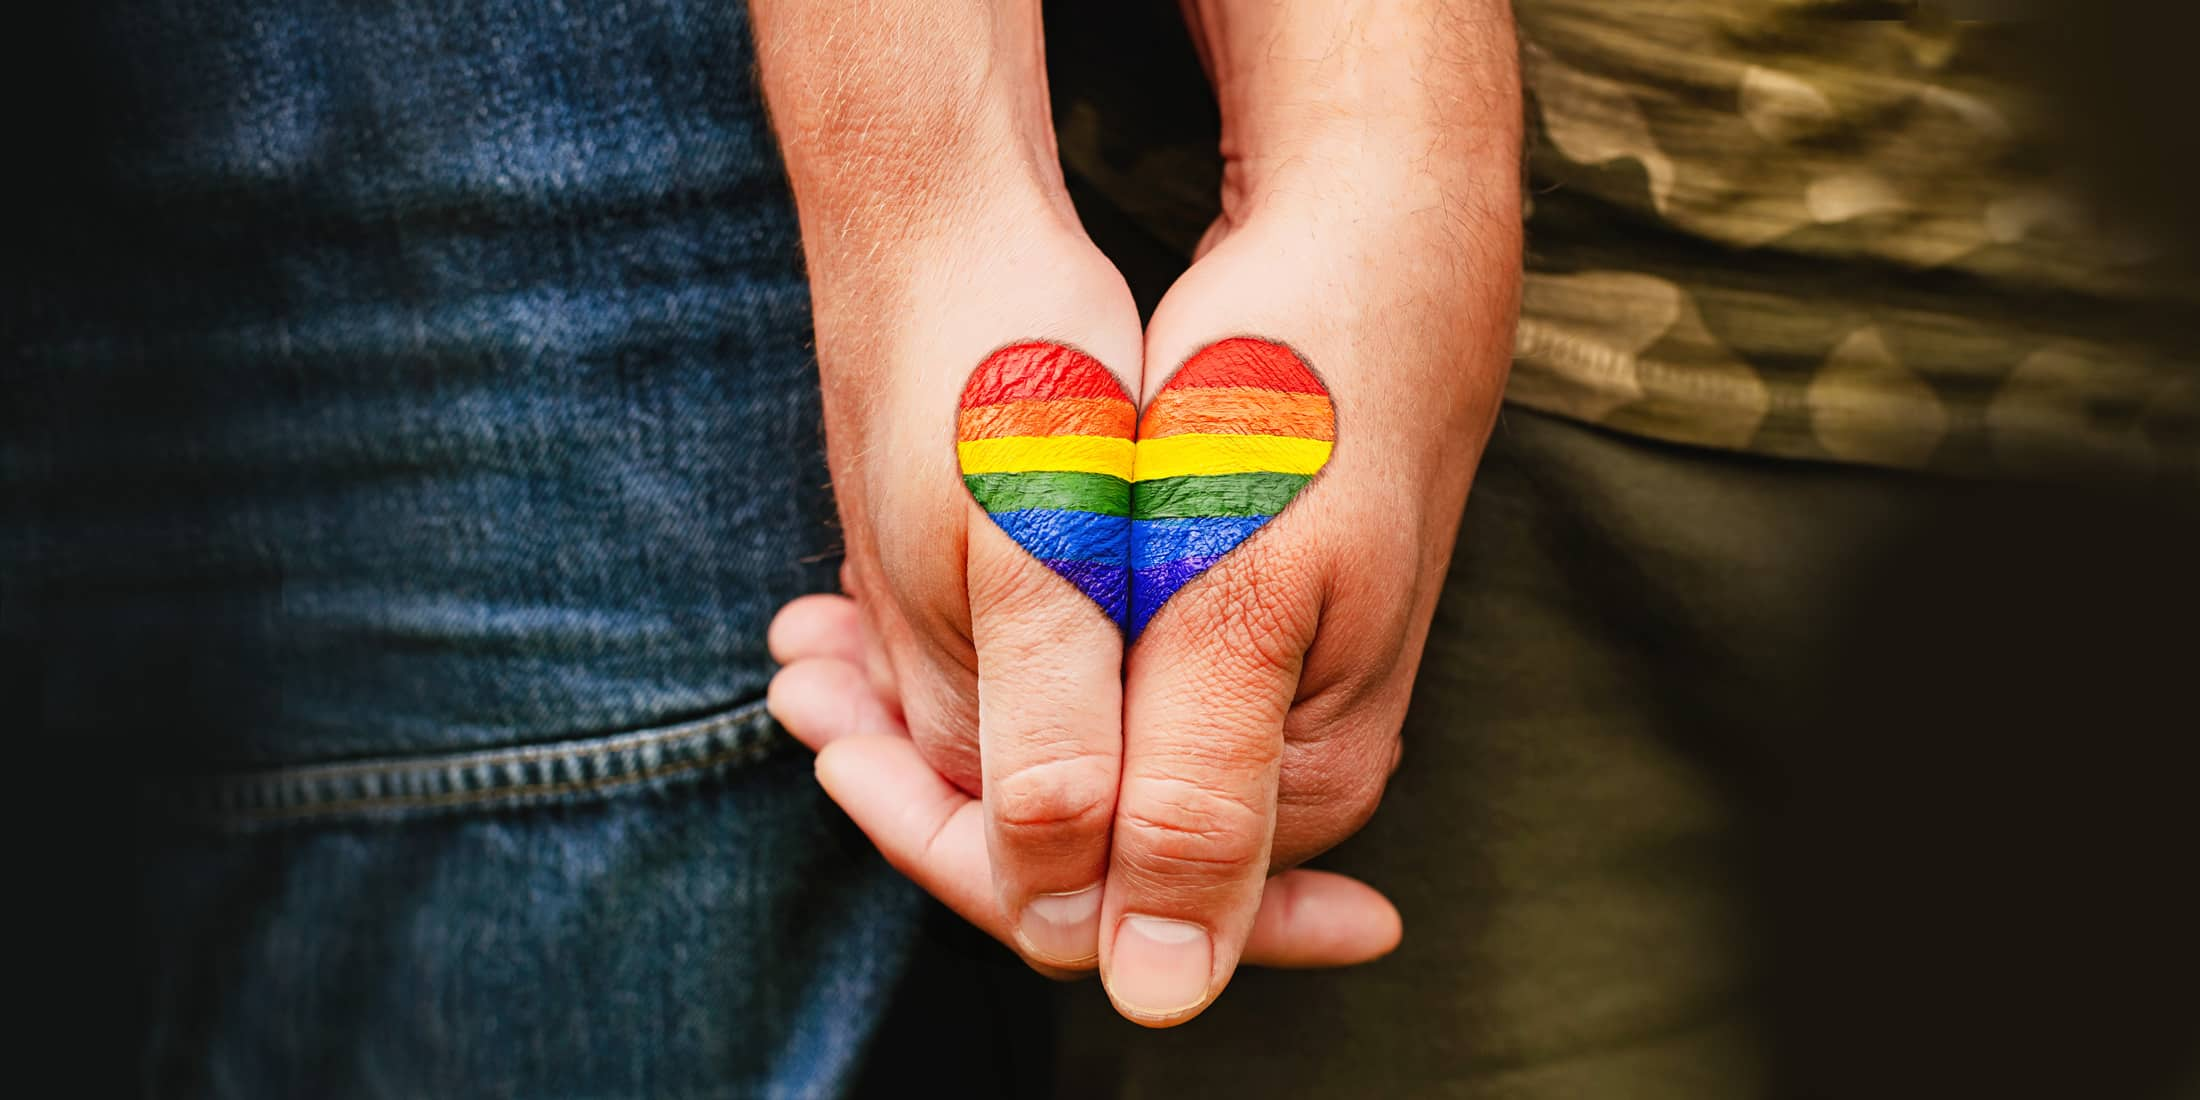 EFFEN is proud to support Pride month and LGBTQ equality.